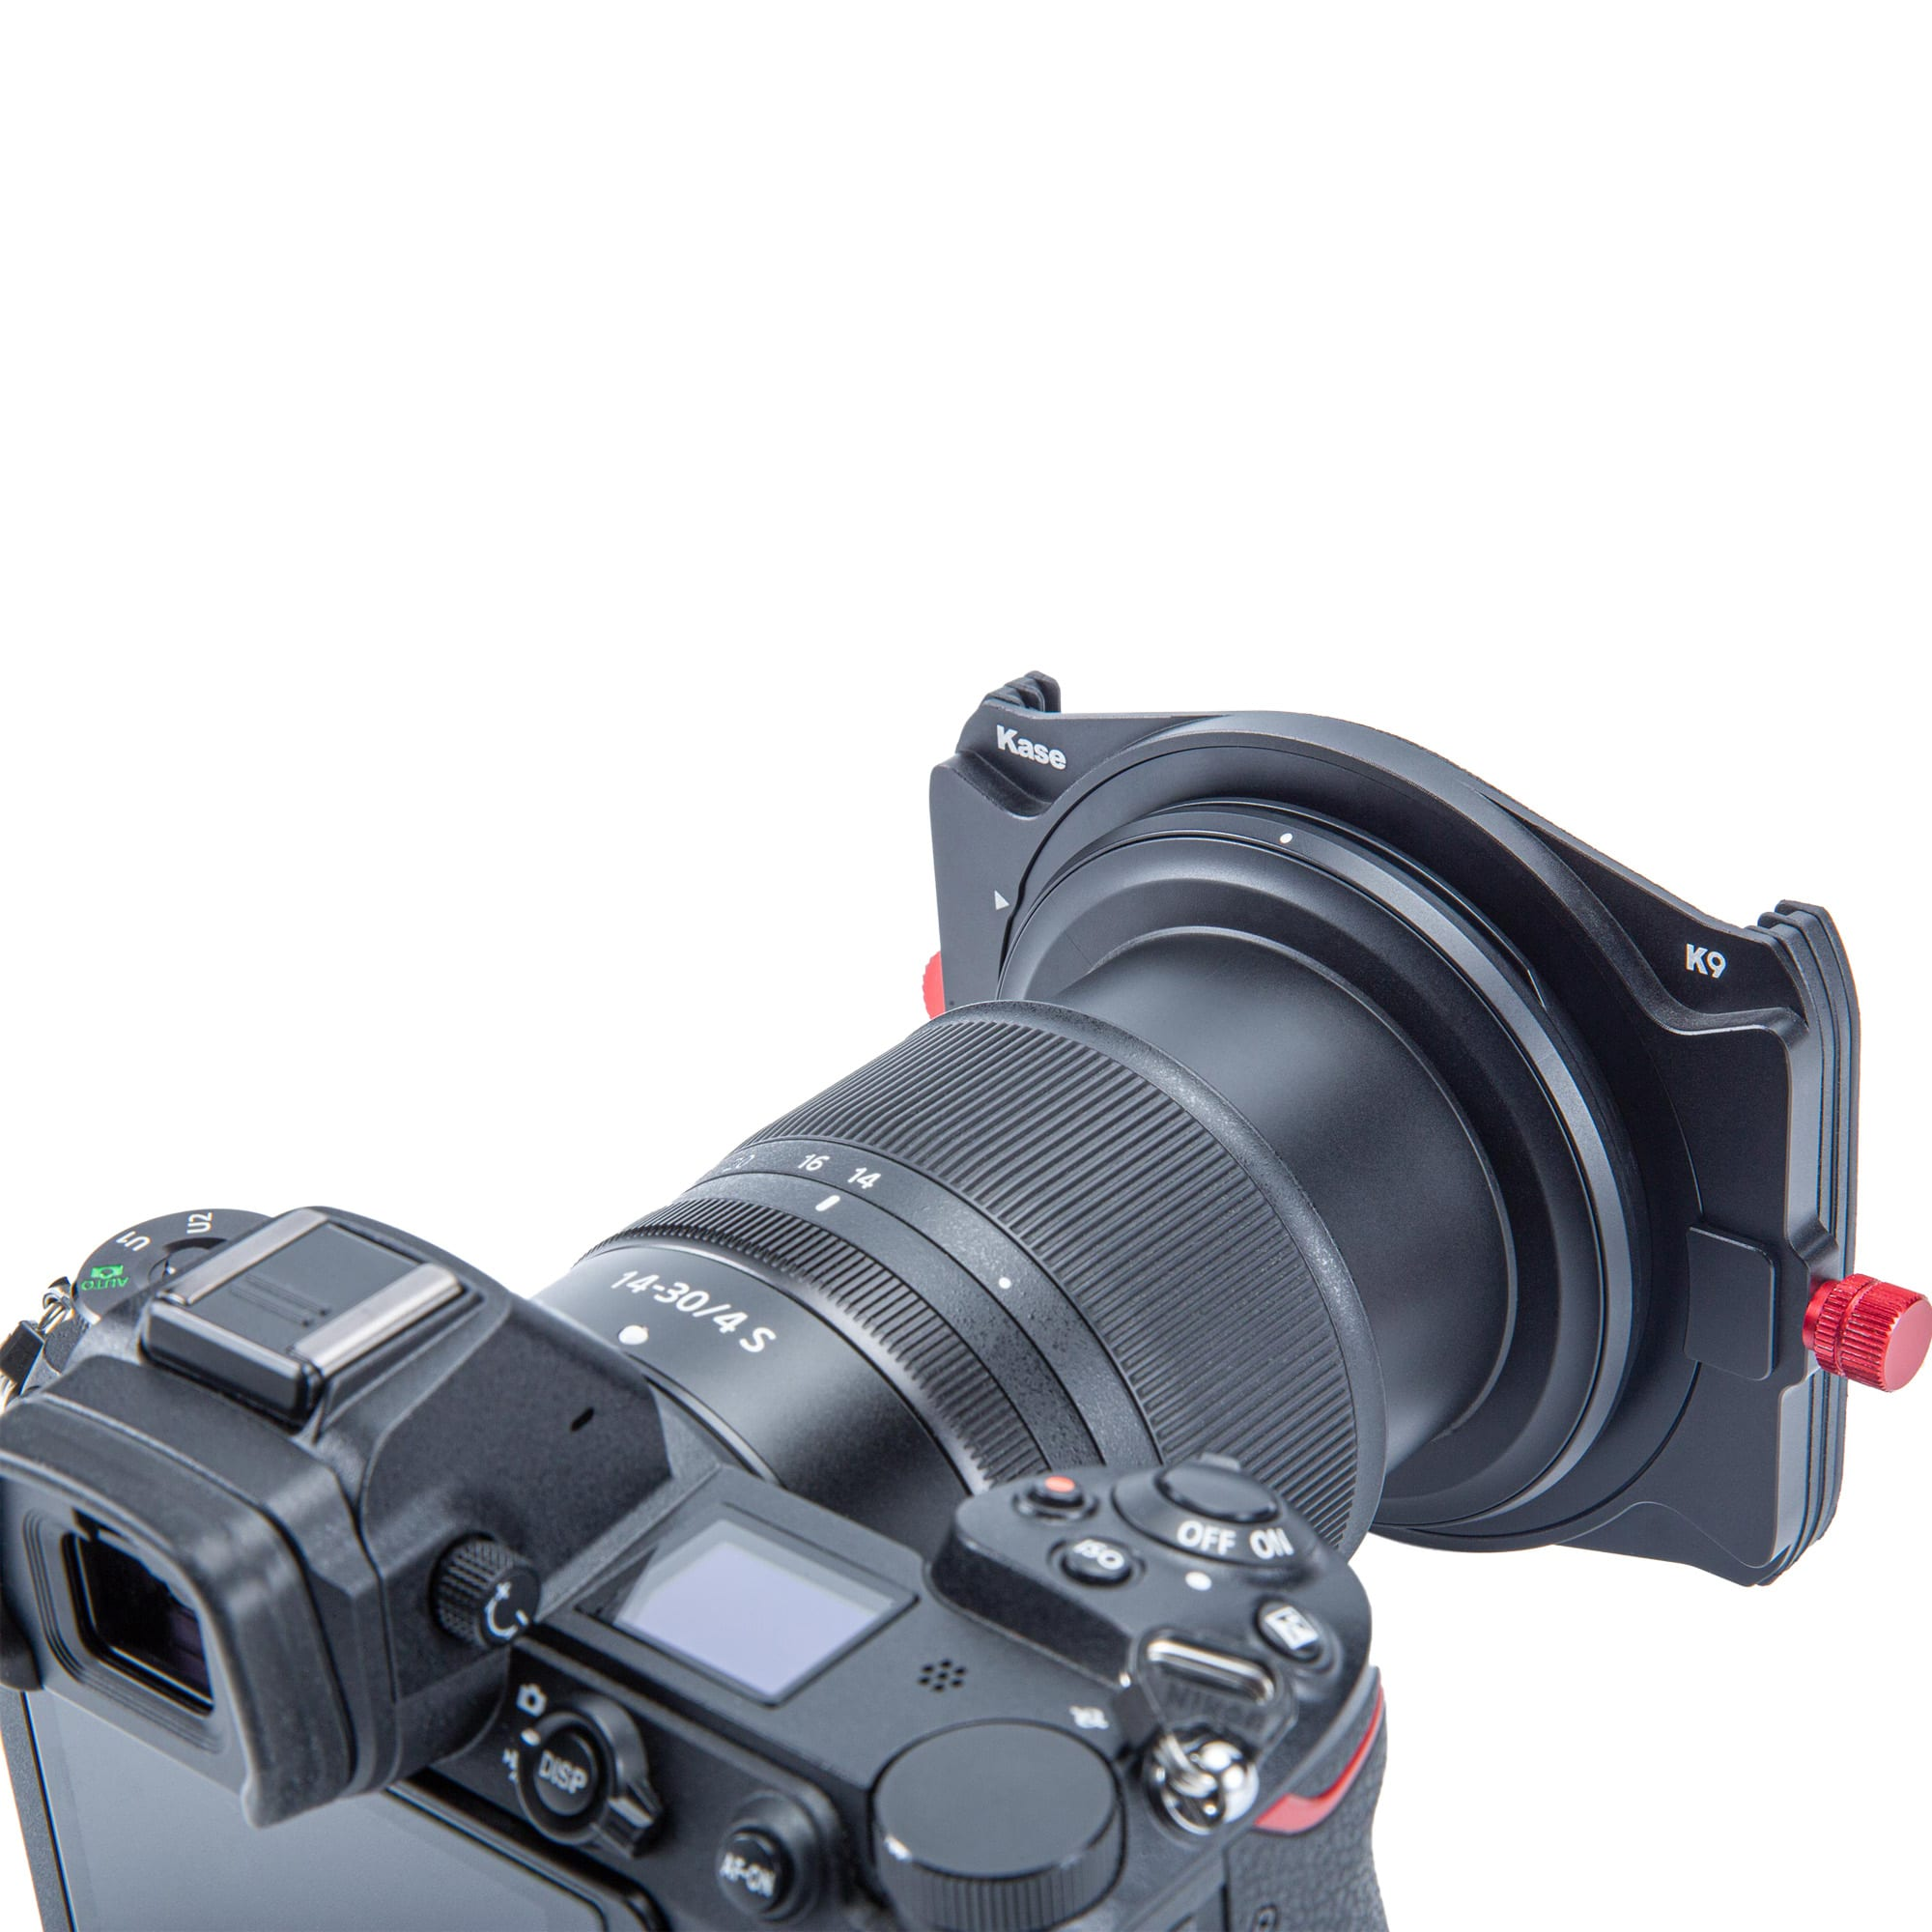 Kase K9 100mm Filter Holder On Camera